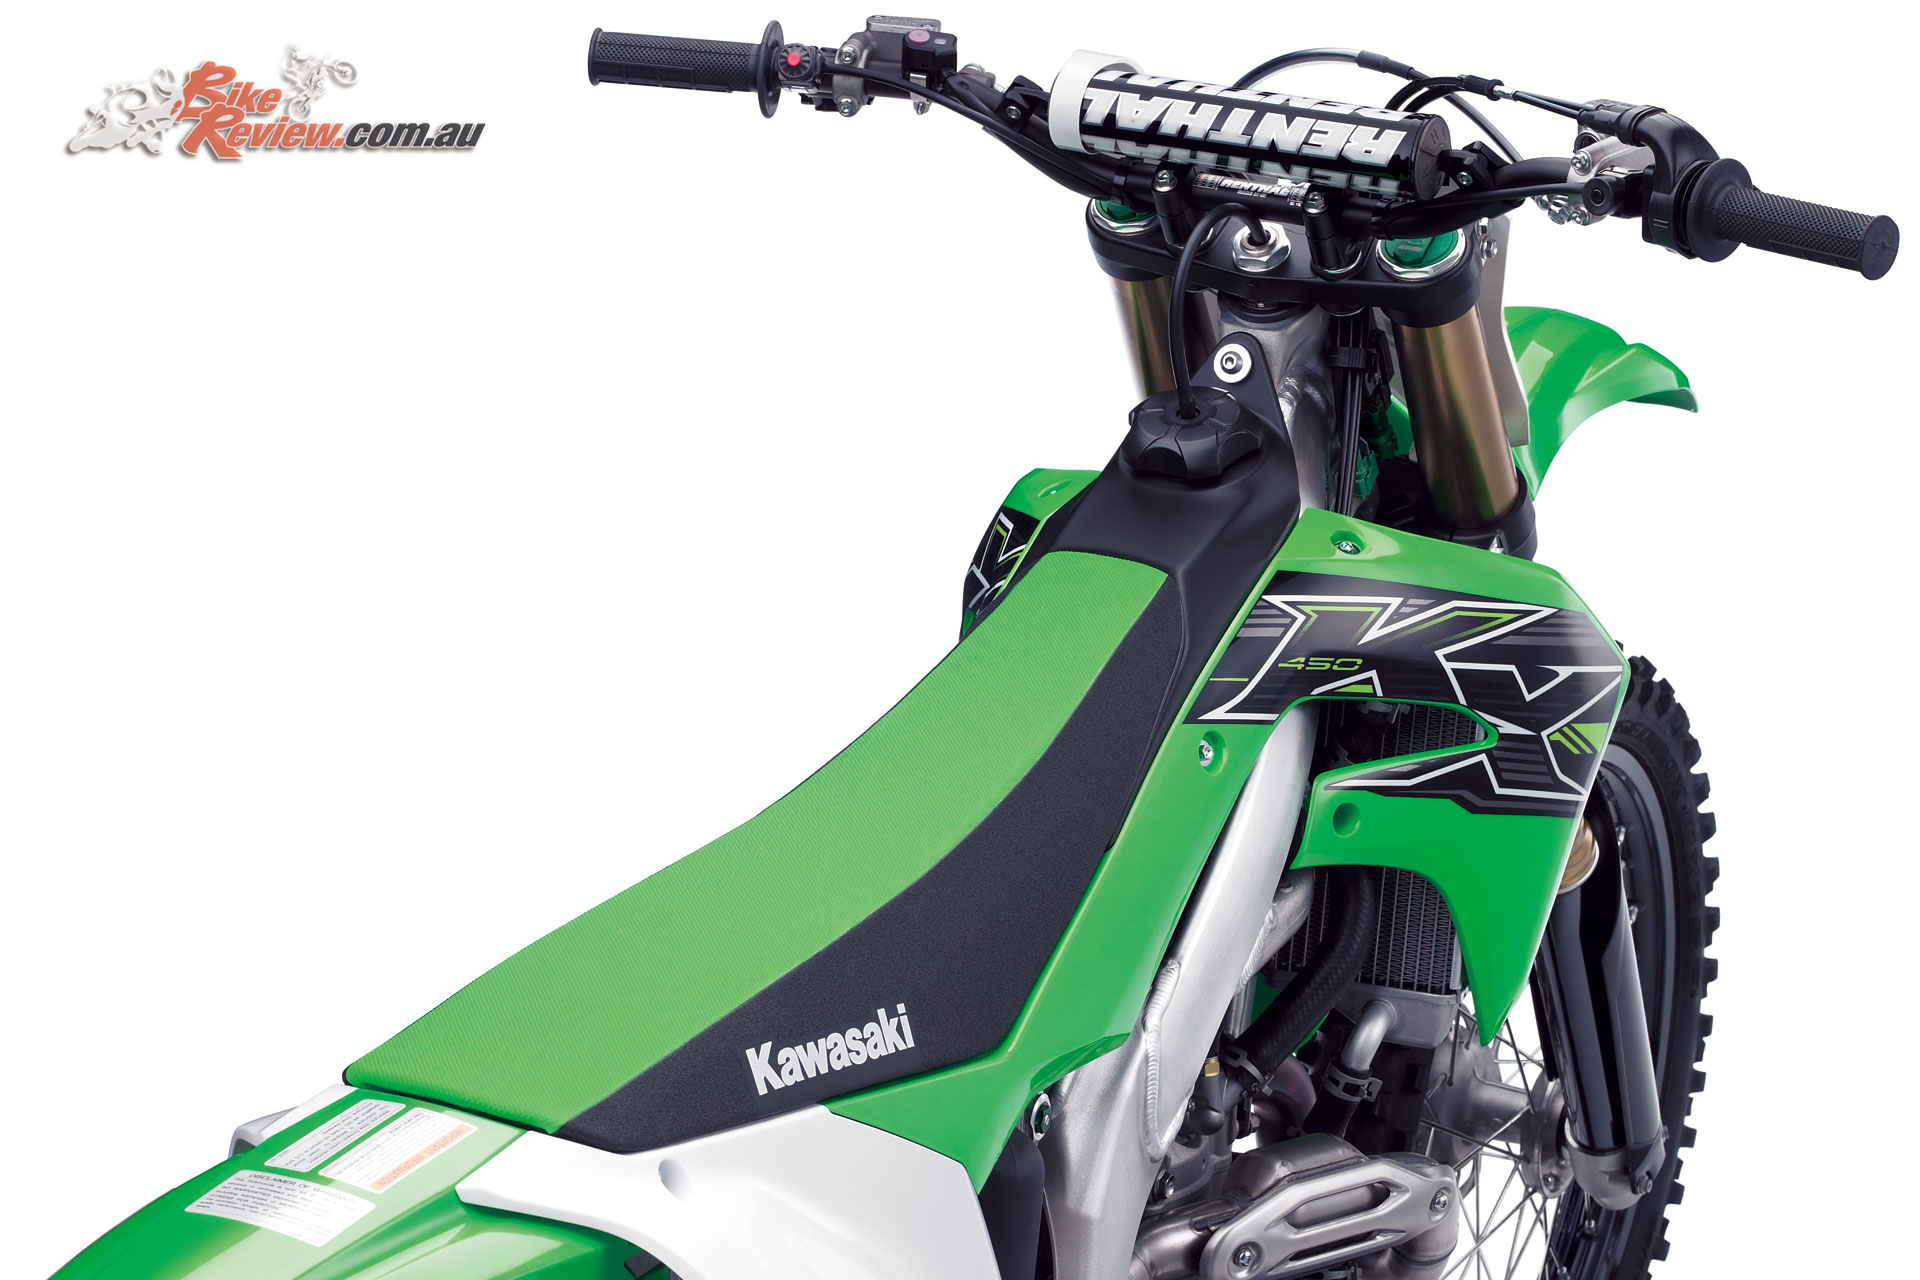 Adjustable triple-clamp gives four Renthal 7/8 bar positions, with footpegs also adjustable on the 2019 KX450